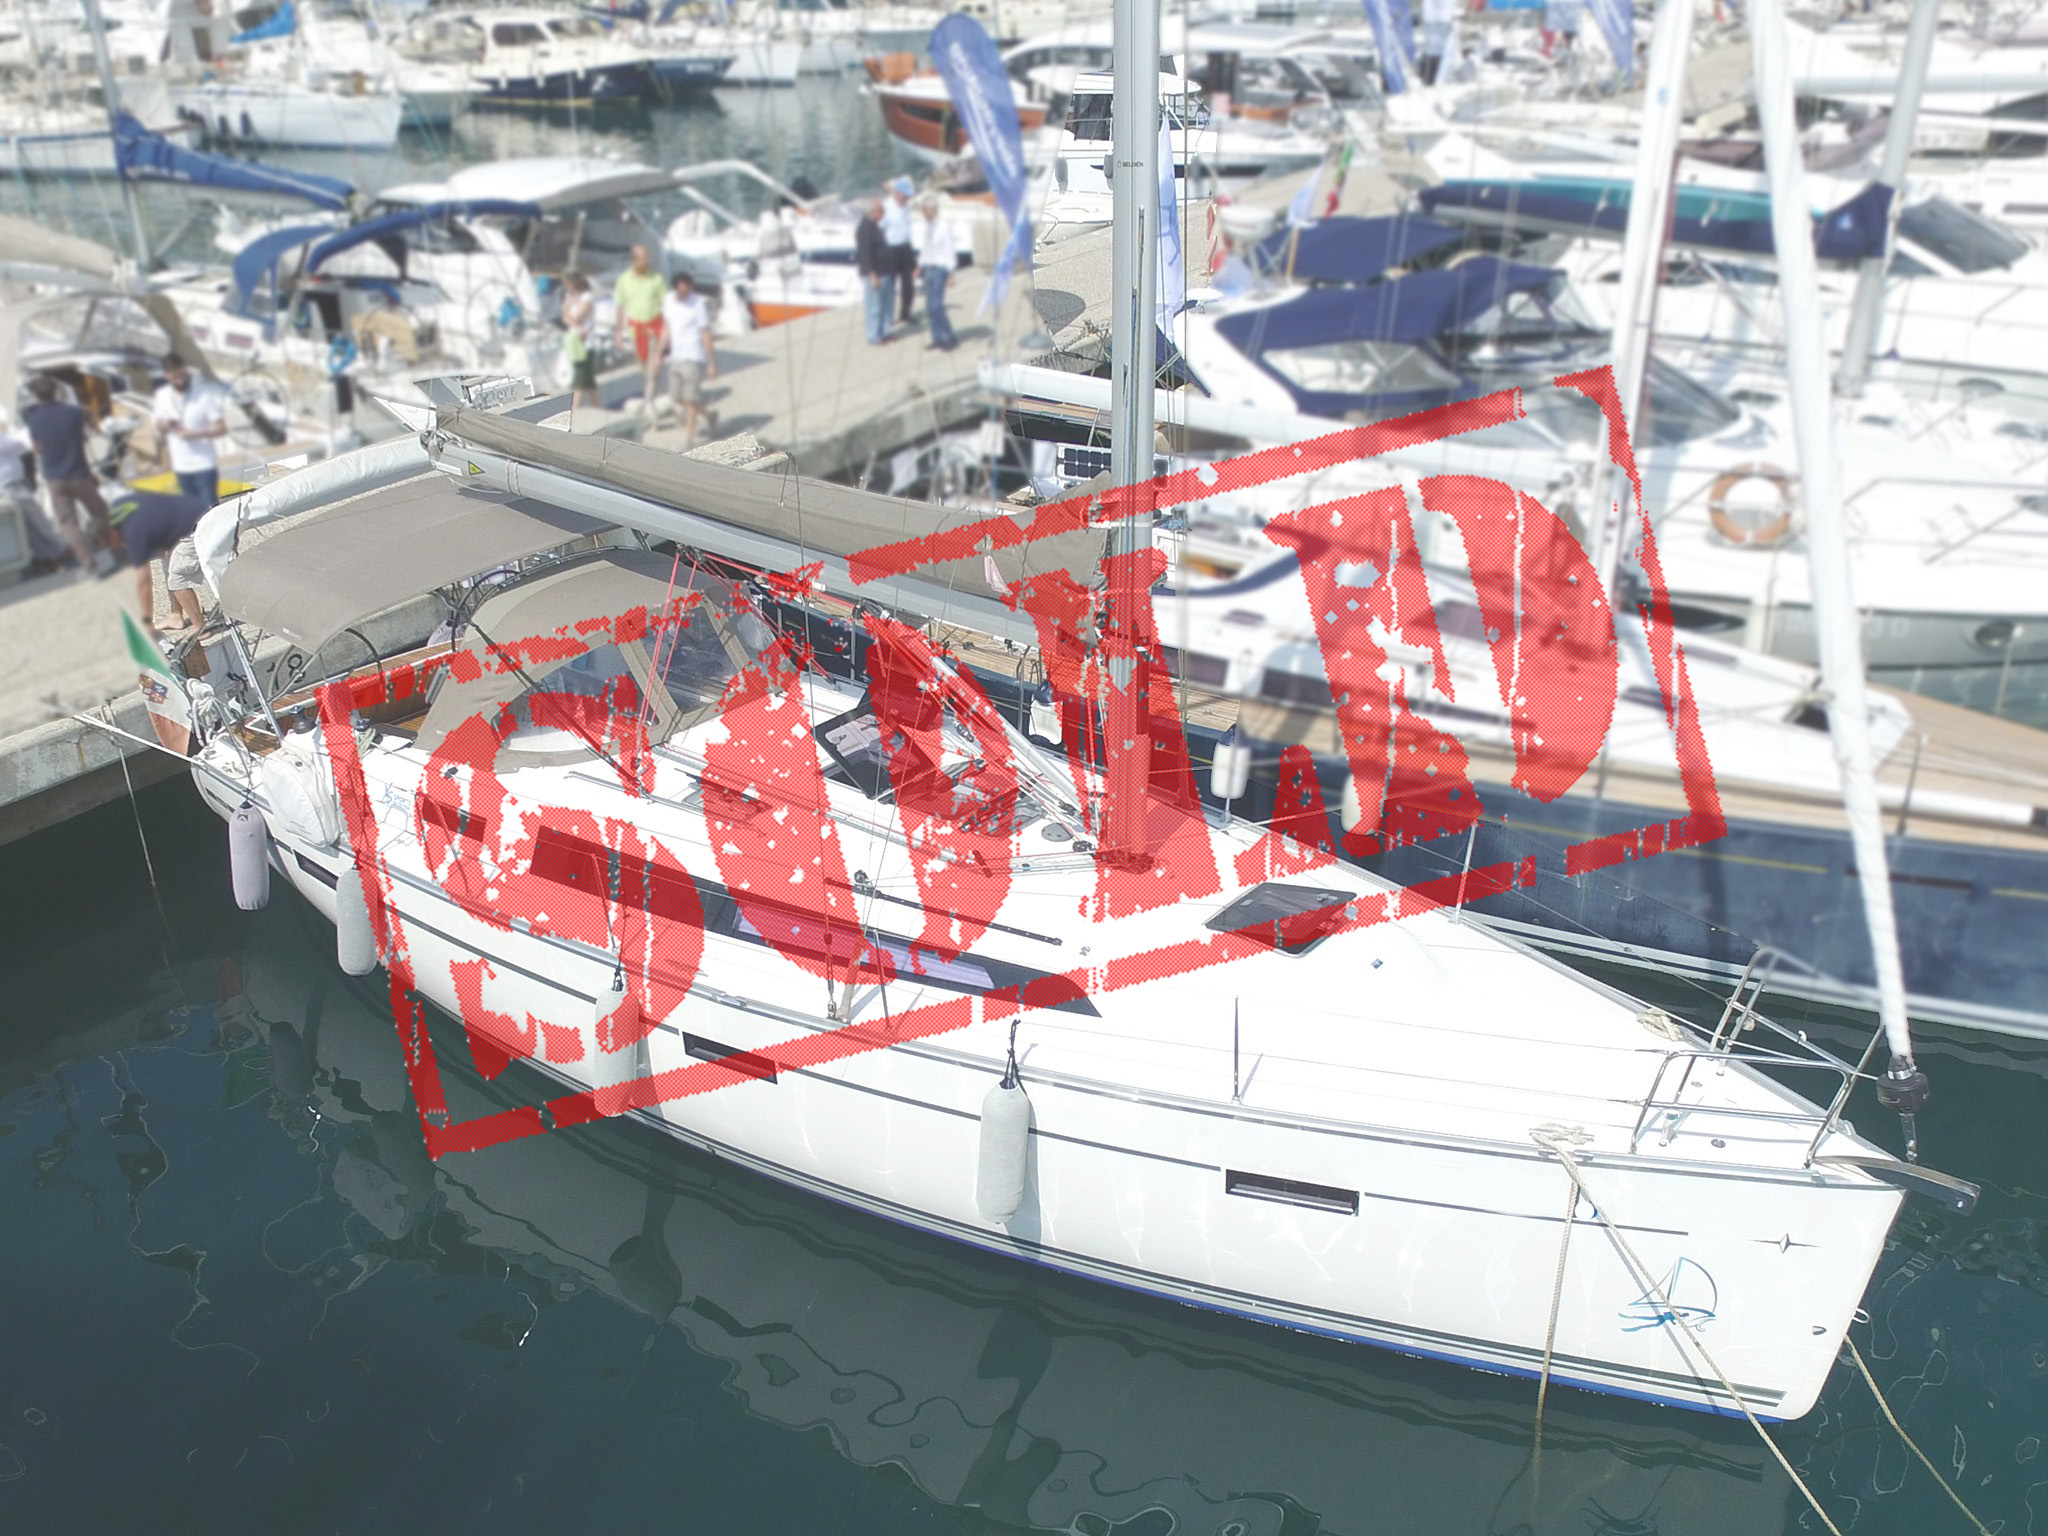 Bavaria 37 Cruiser sold